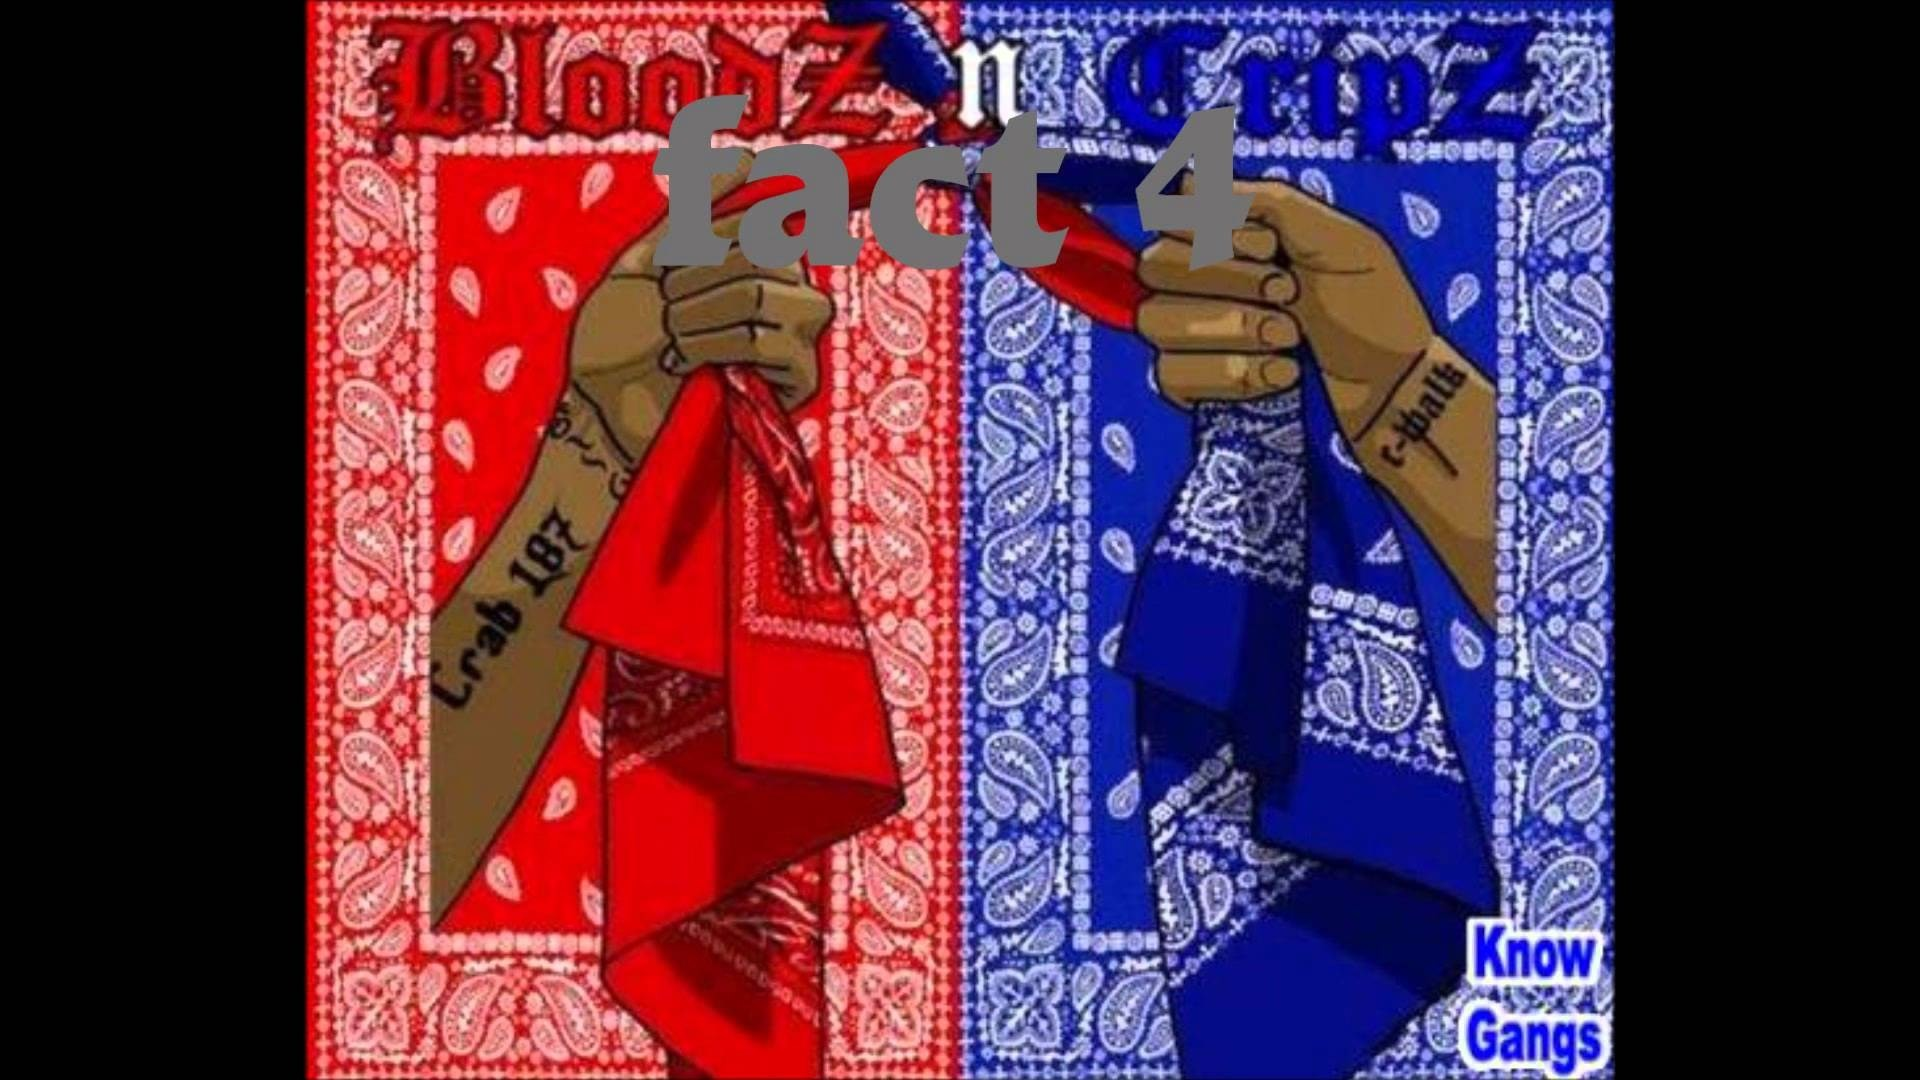 1920x1080 crips and bloods wallpaper